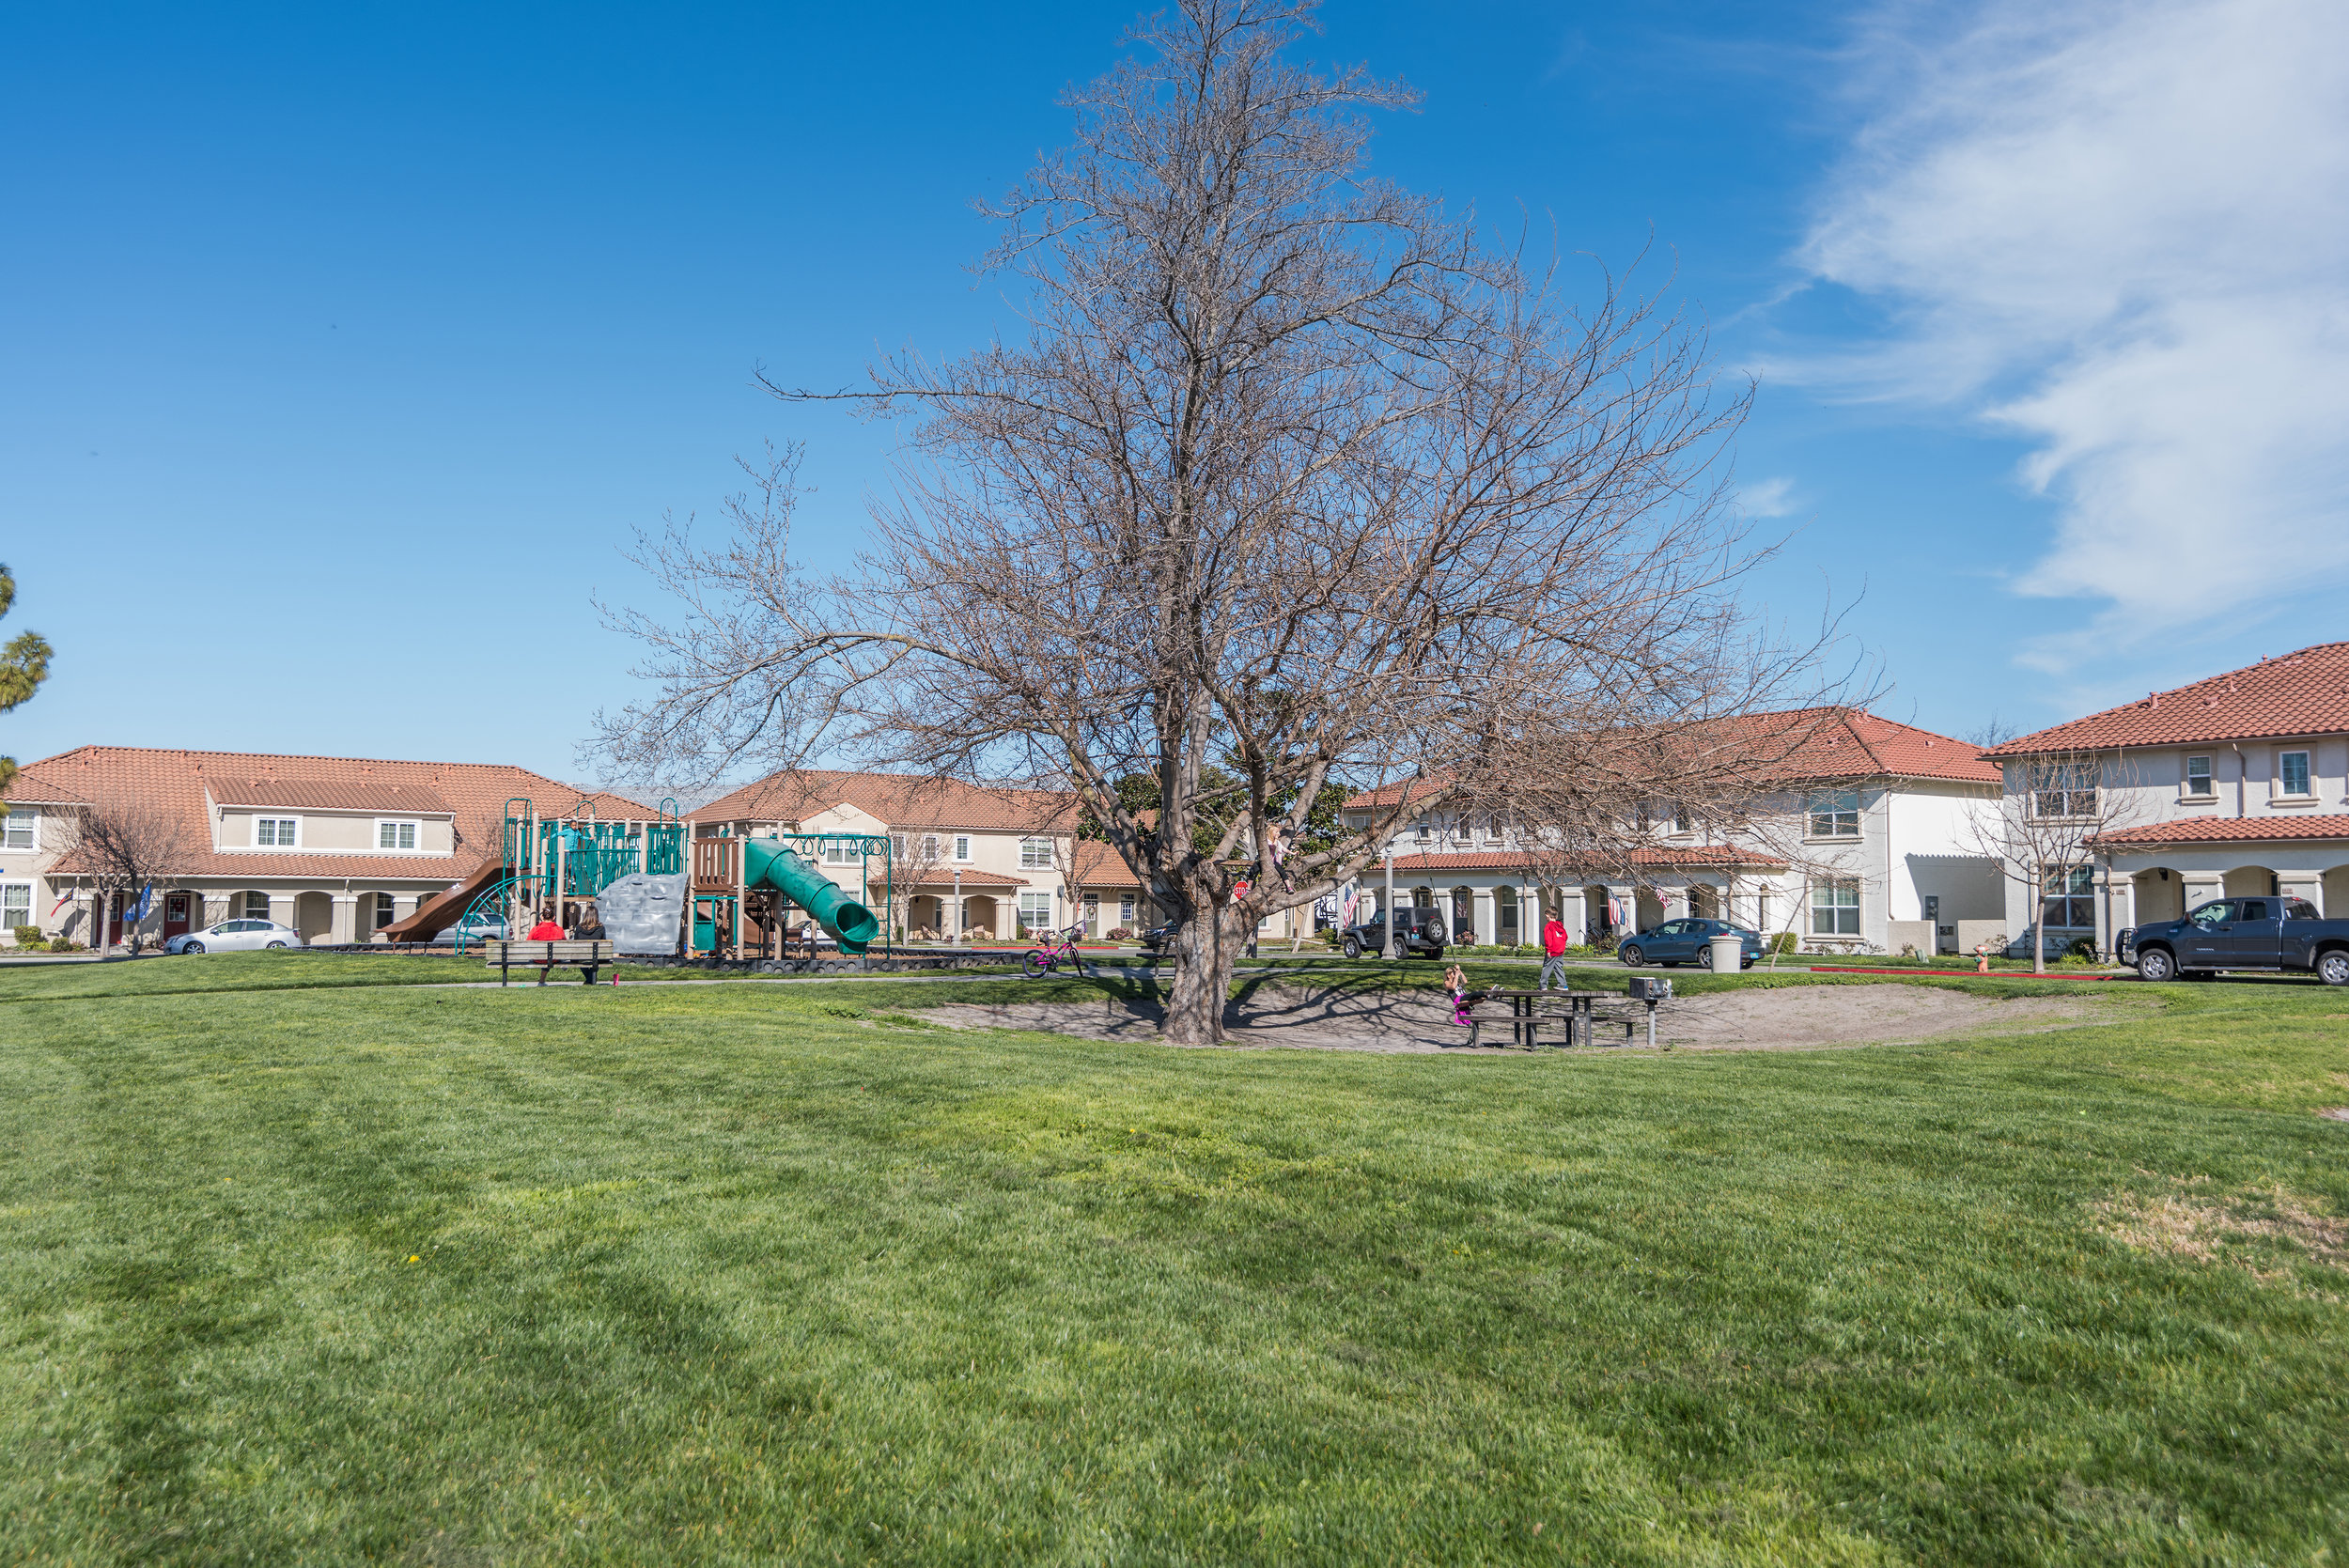 Townhome Community in Silicon Valley